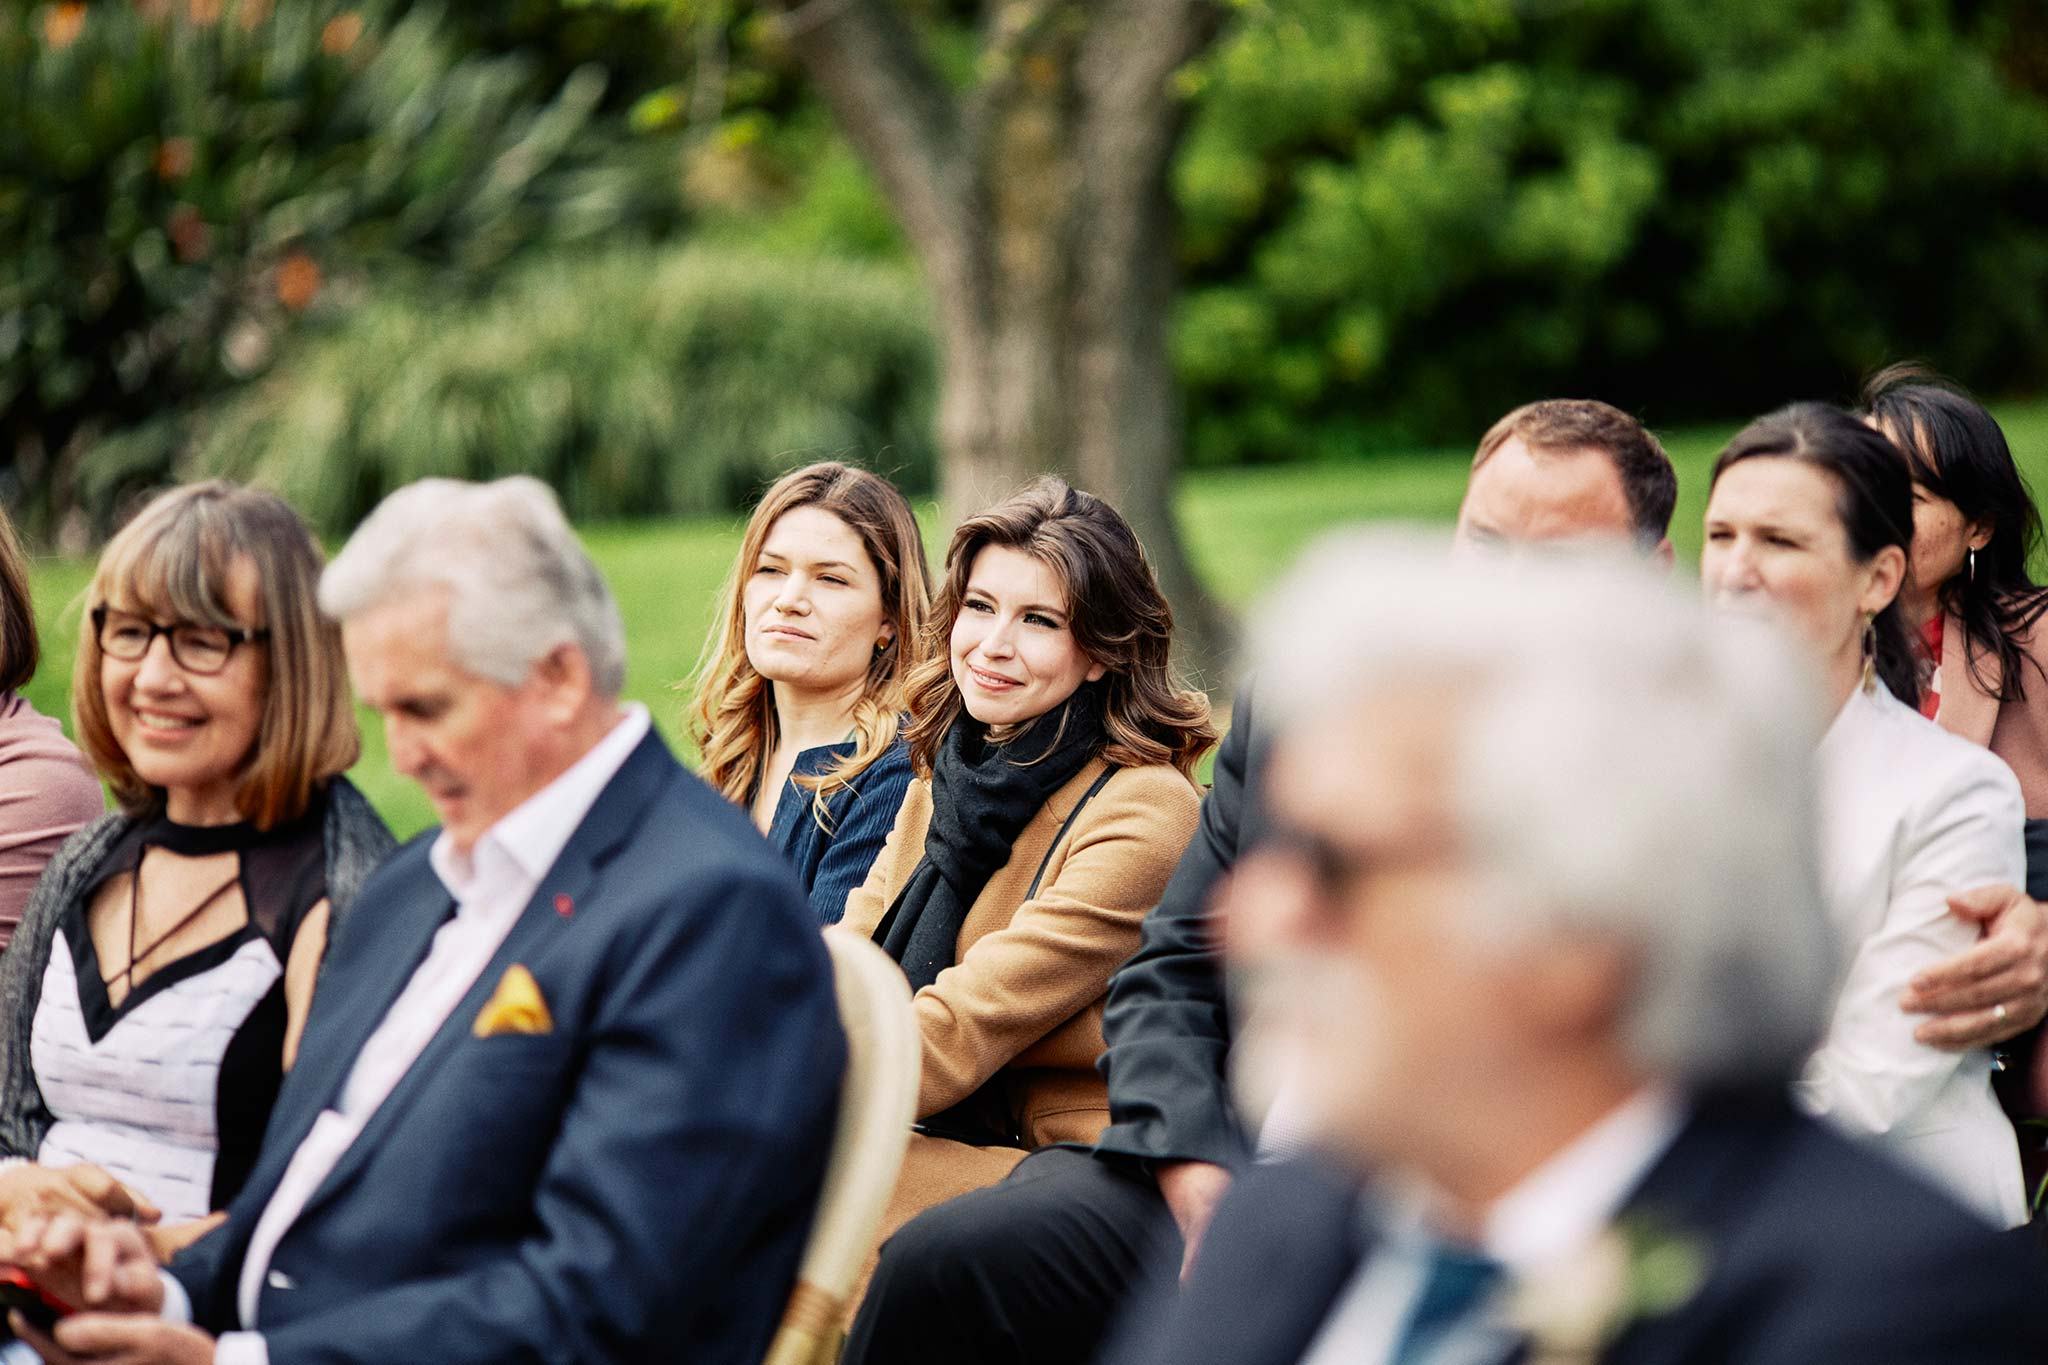 Melbourne Royal Botanical Garden Wedding Ceremony guest reaction